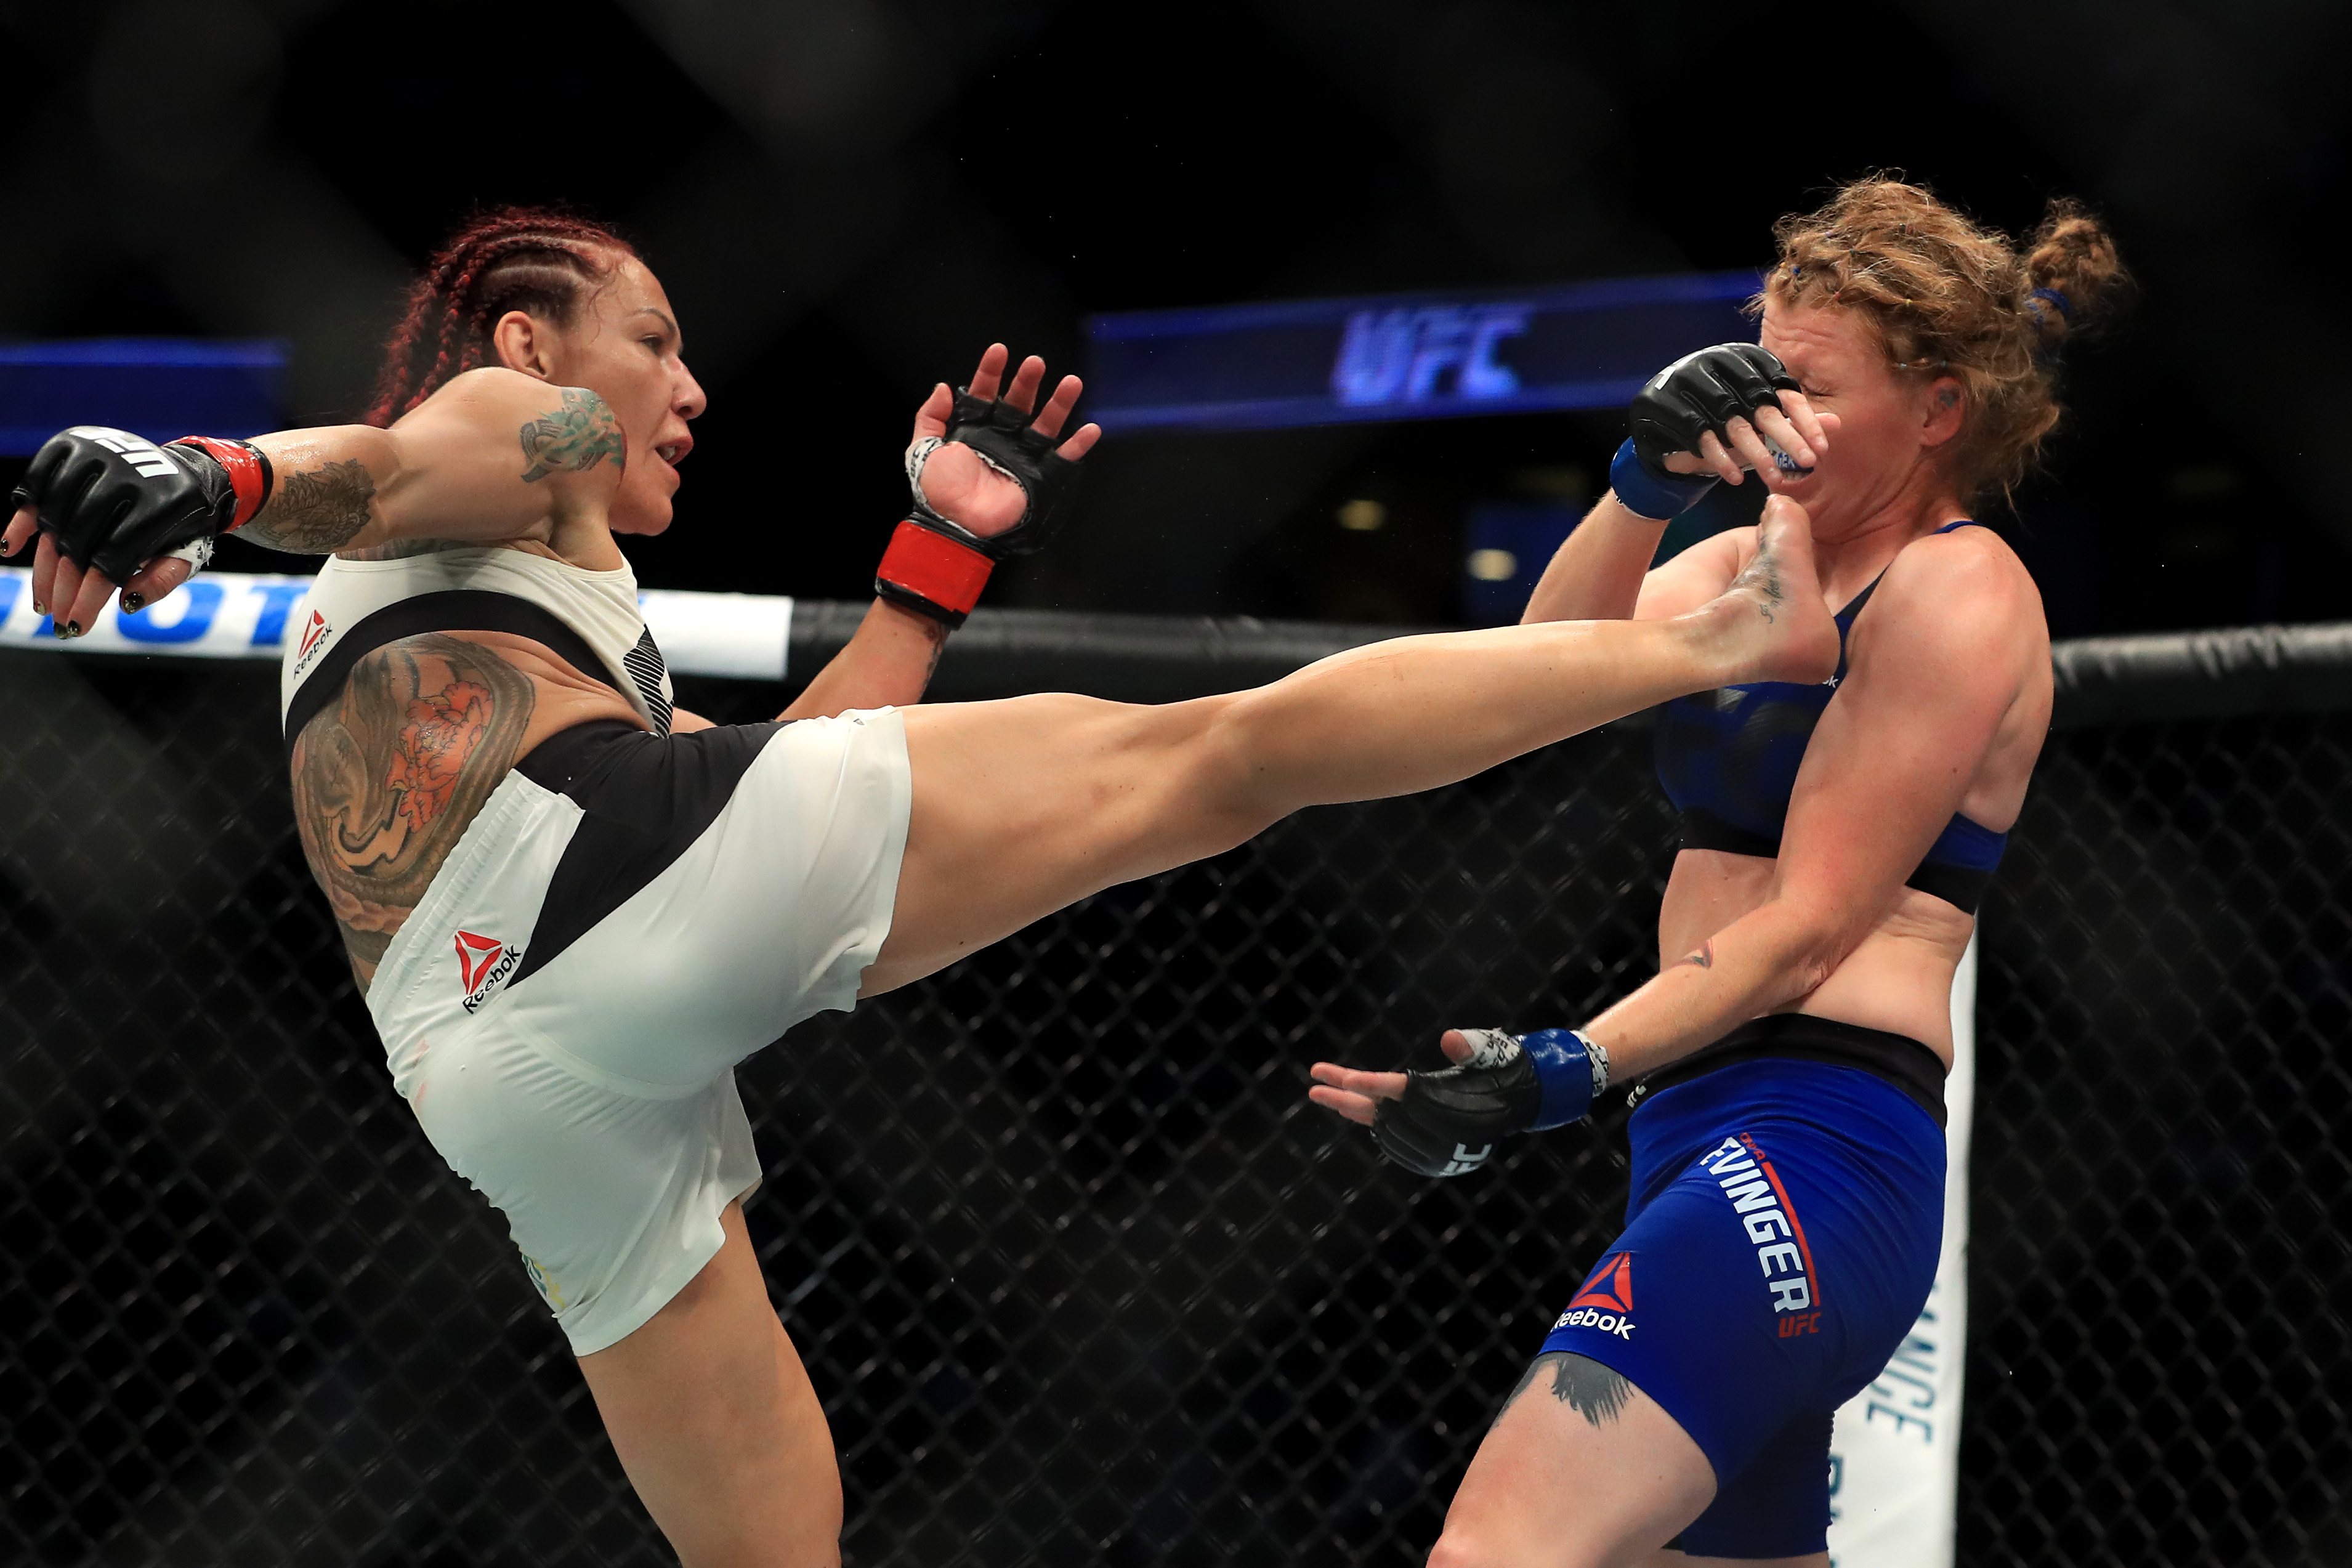 Cyborgs crushing dominance comes with UFC dilemmas